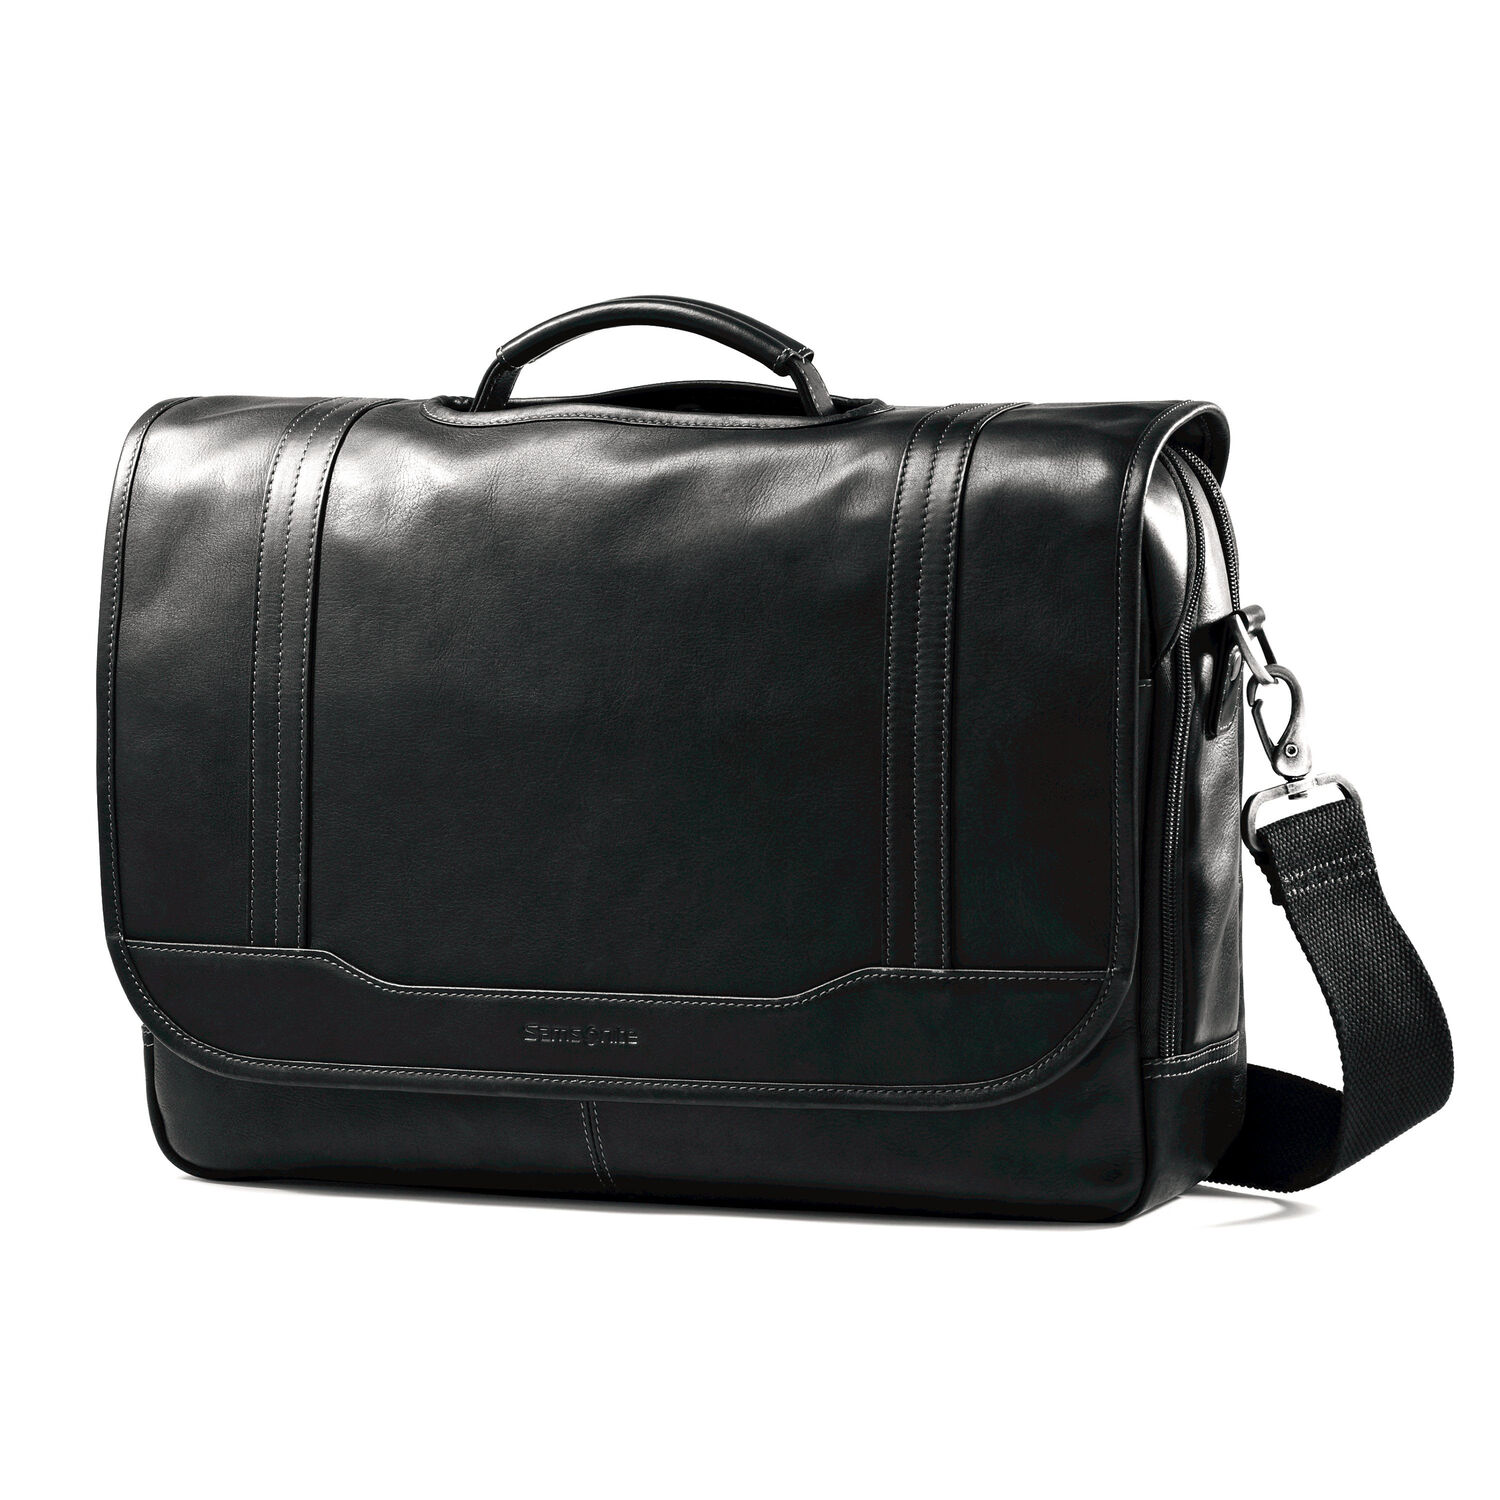 samsonite colombian leather flapover briefcase. Black Bedroom Furniture Sets. Home Design Ideas